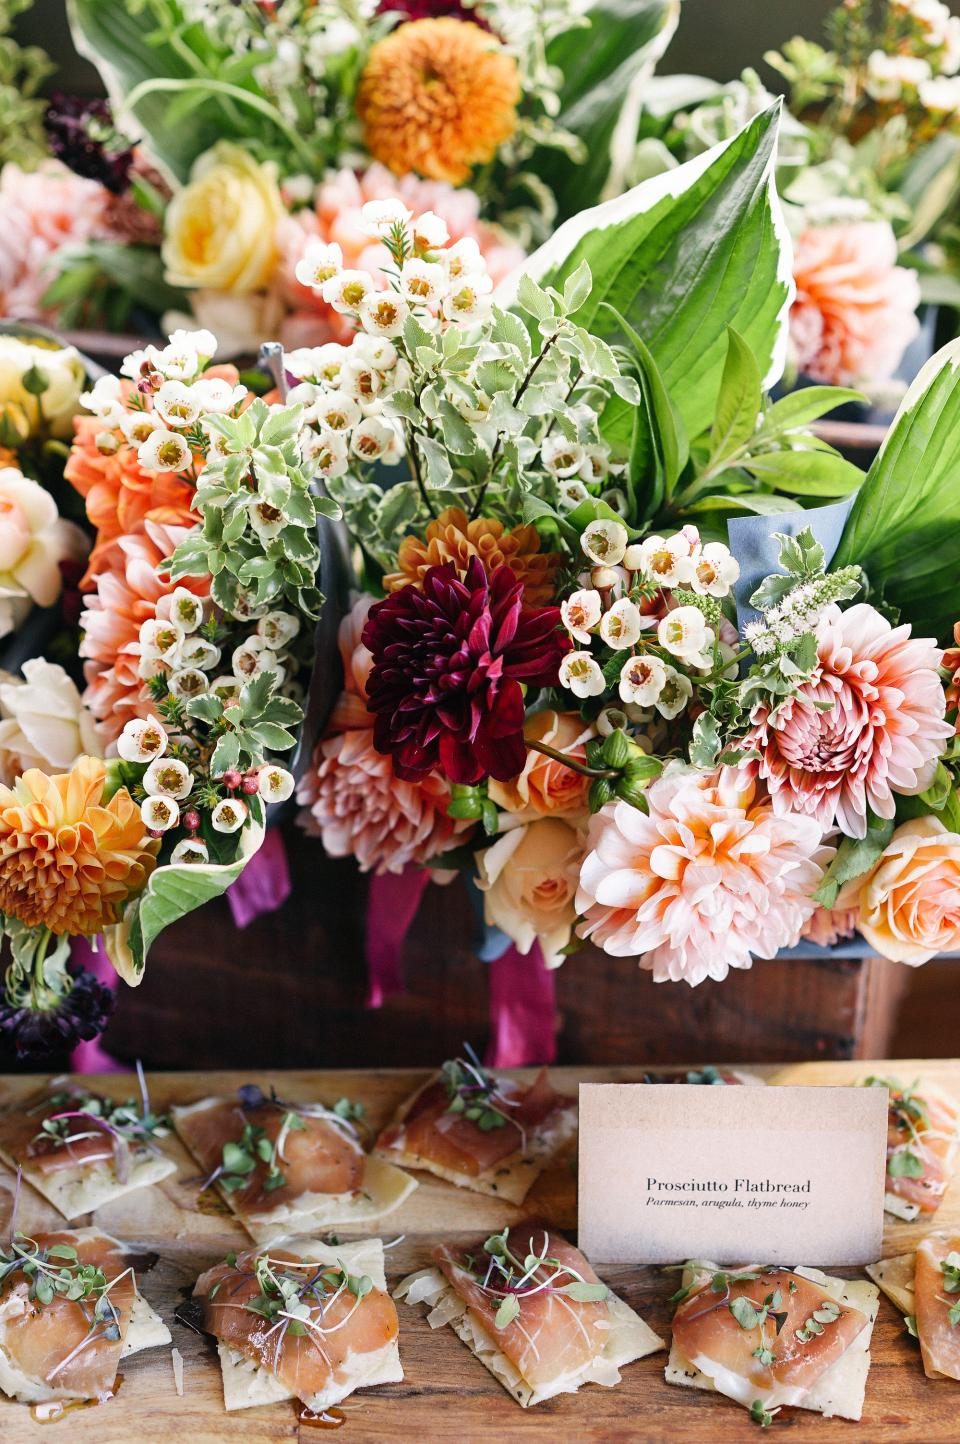 food, meat, vegetables, table, dish, buffet, display, flower, restaurant